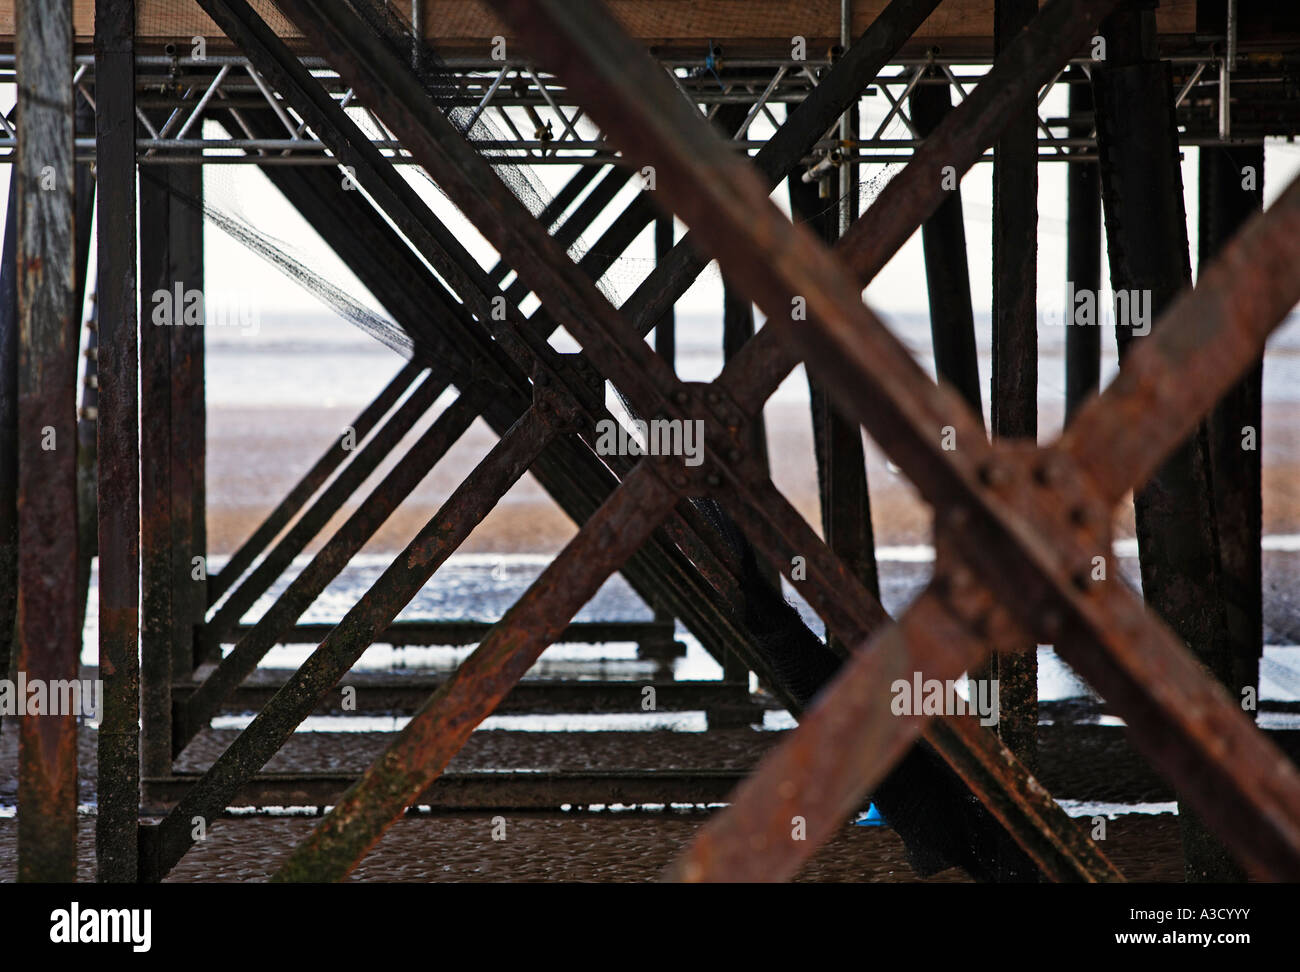 Underneath the Pier at Cleethorpes Lincolnshire England UK - Stock Image